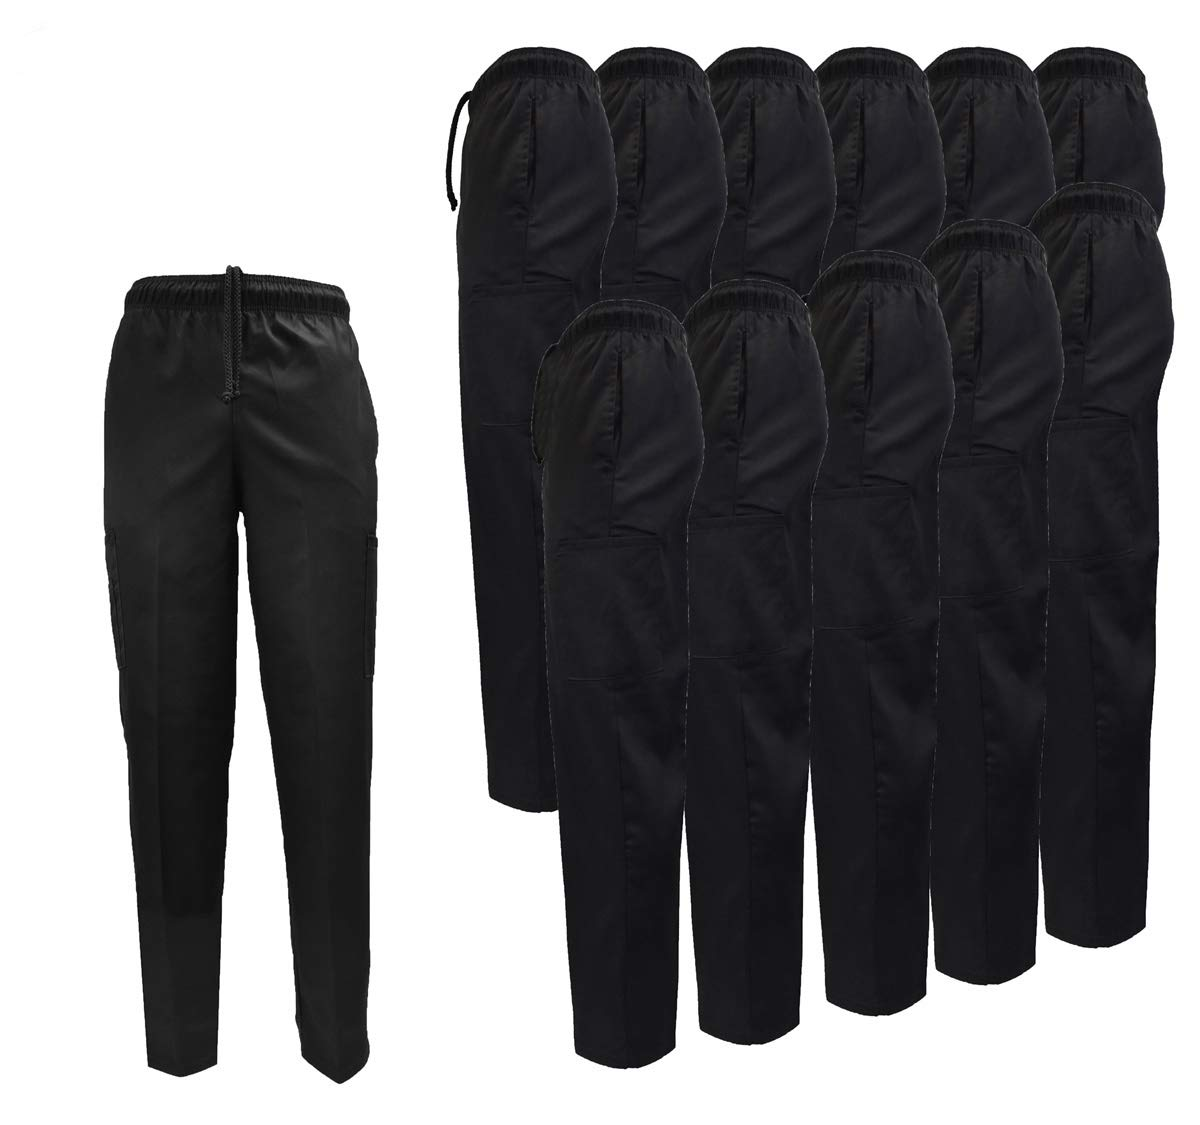 Natural Uniforms Classic 6 Pocket Black Chef Pants with Multi-Pack Quantities Available (12, Large) by Natural Uniforms